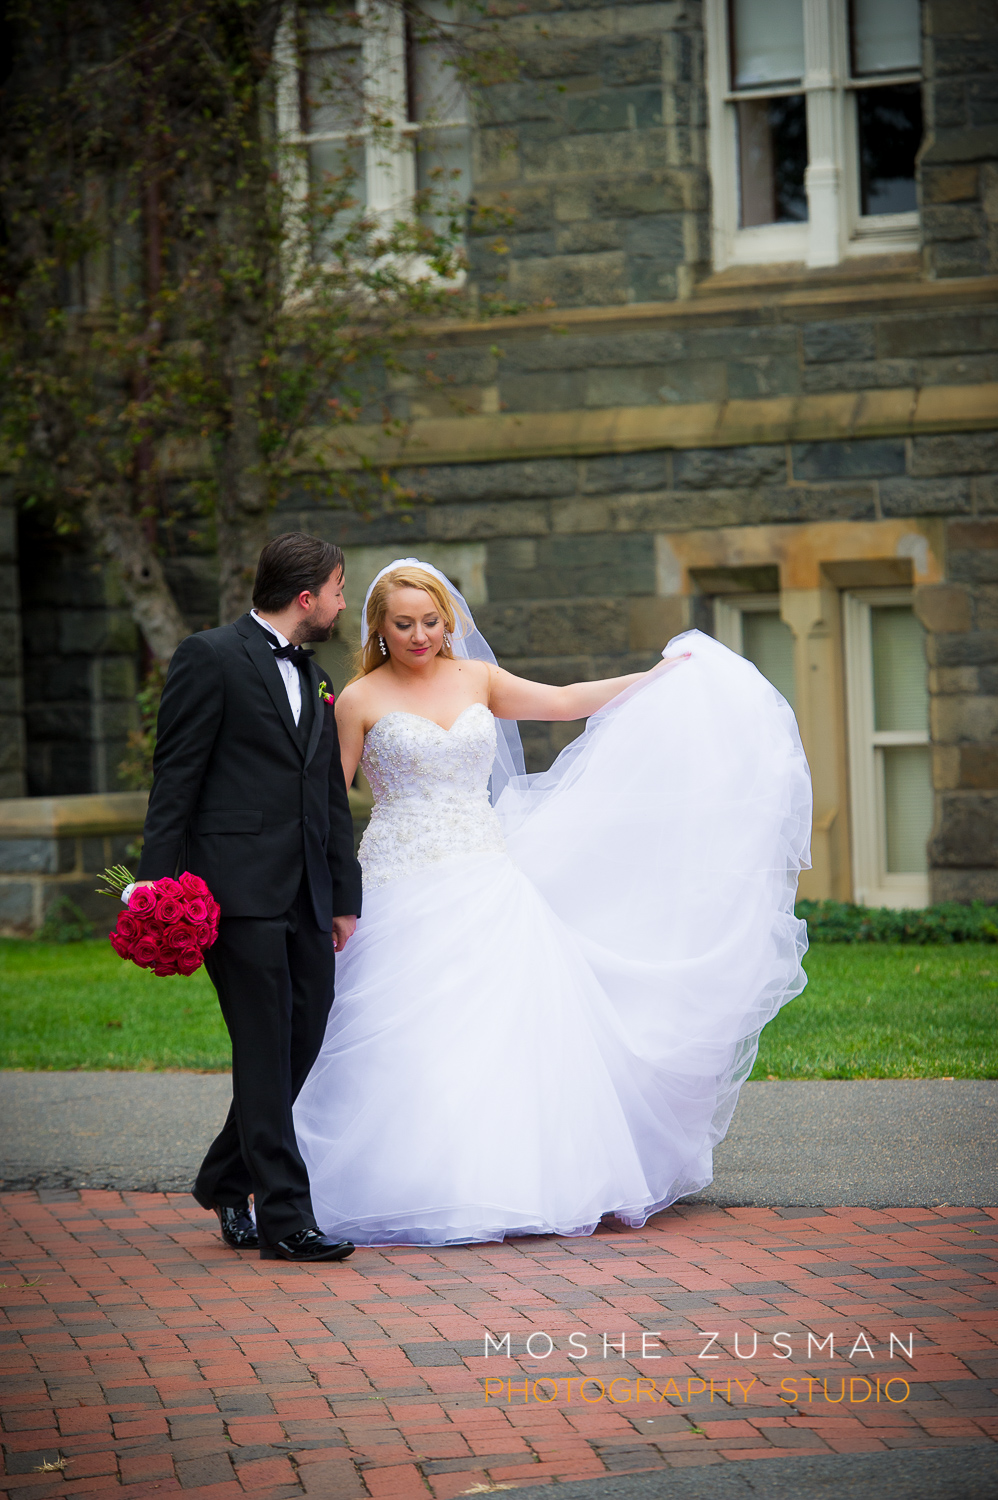 Hay Adams DC Wedding Photographer Moshe Zusman 21.jpg